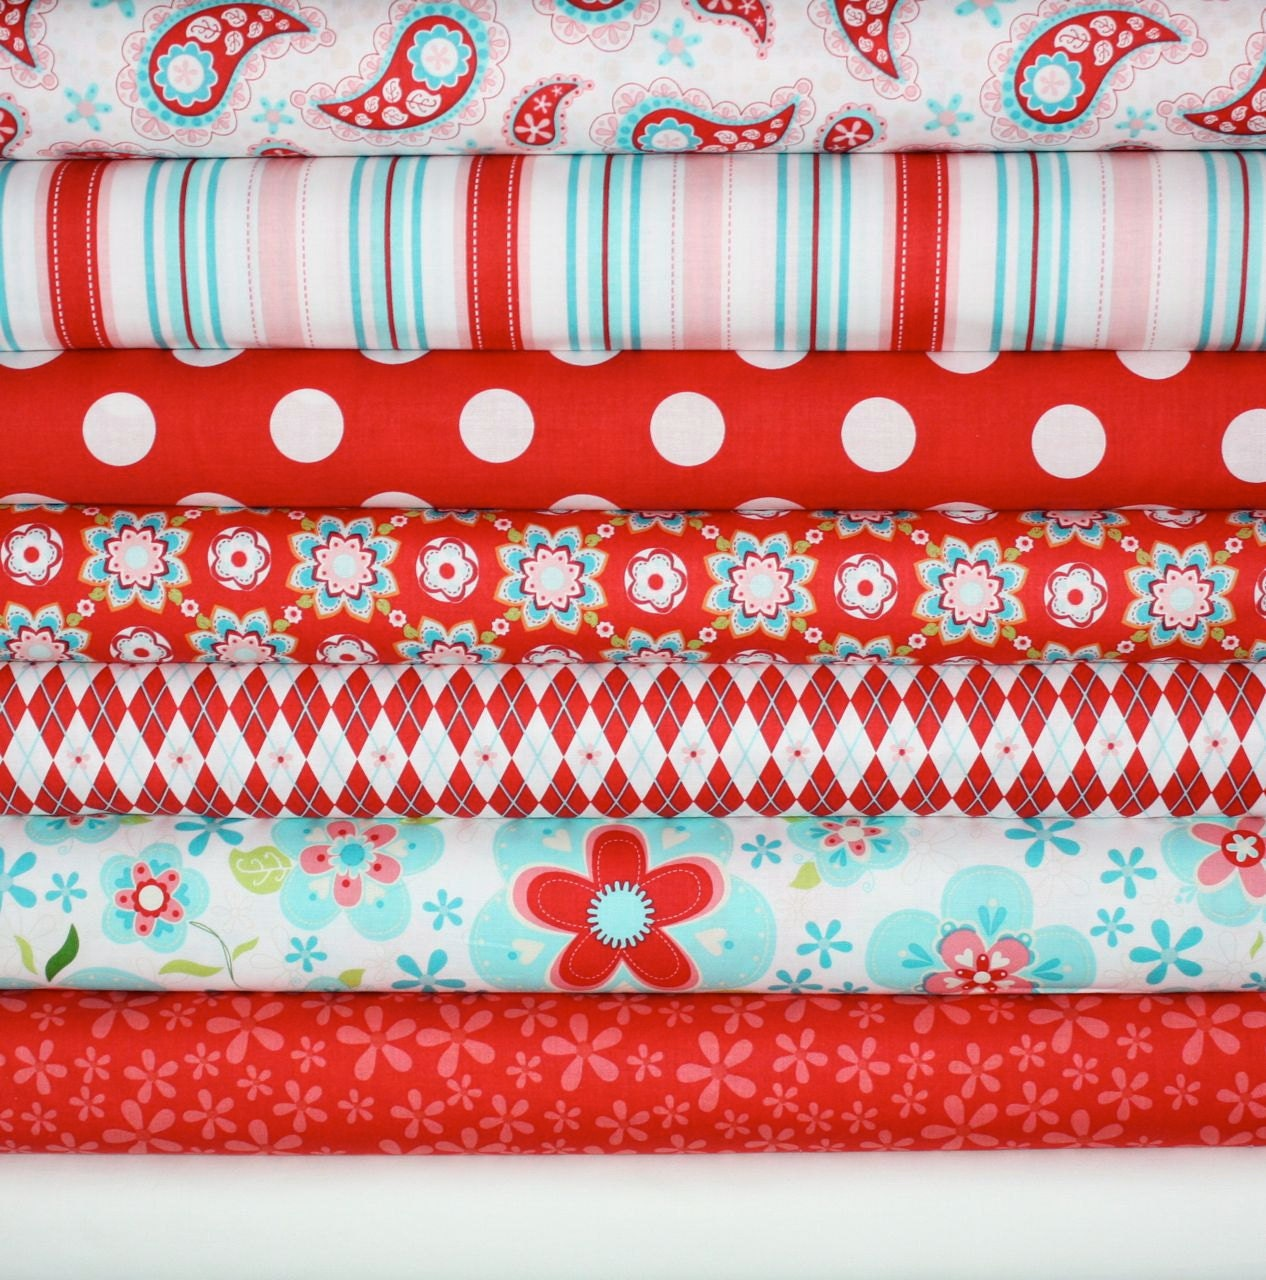 Sugar and Spice Fabric by The Quilted Fish for Riley Blake Designs- Red Fat Quarter Bundle, 8 total